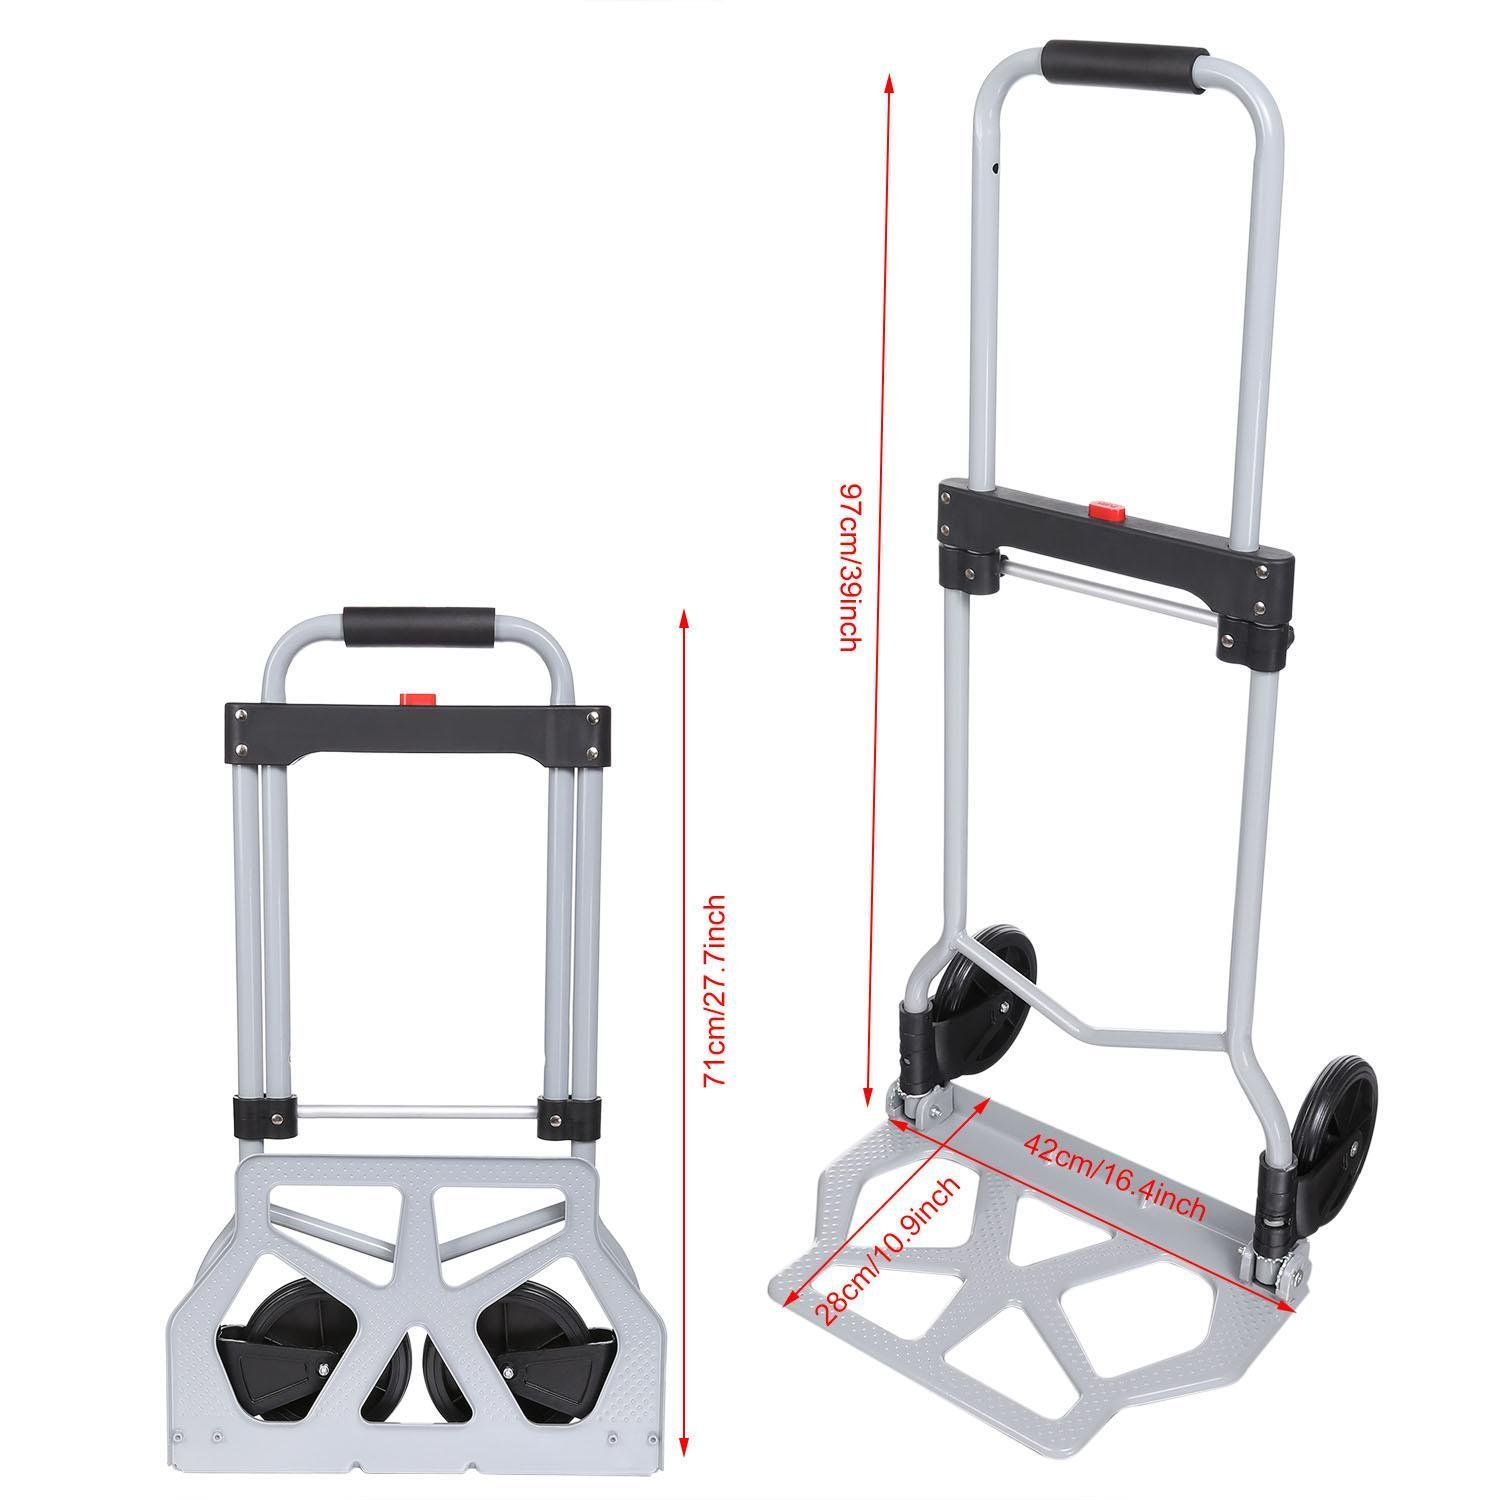 Folding Hand Truck/ Assisted Hand Truck/Cart 220lbs Lightweight Portable Fold Up Dolly Foldable Wheels for Luggage, Personal, Travel, Auto, Moving and Office Use